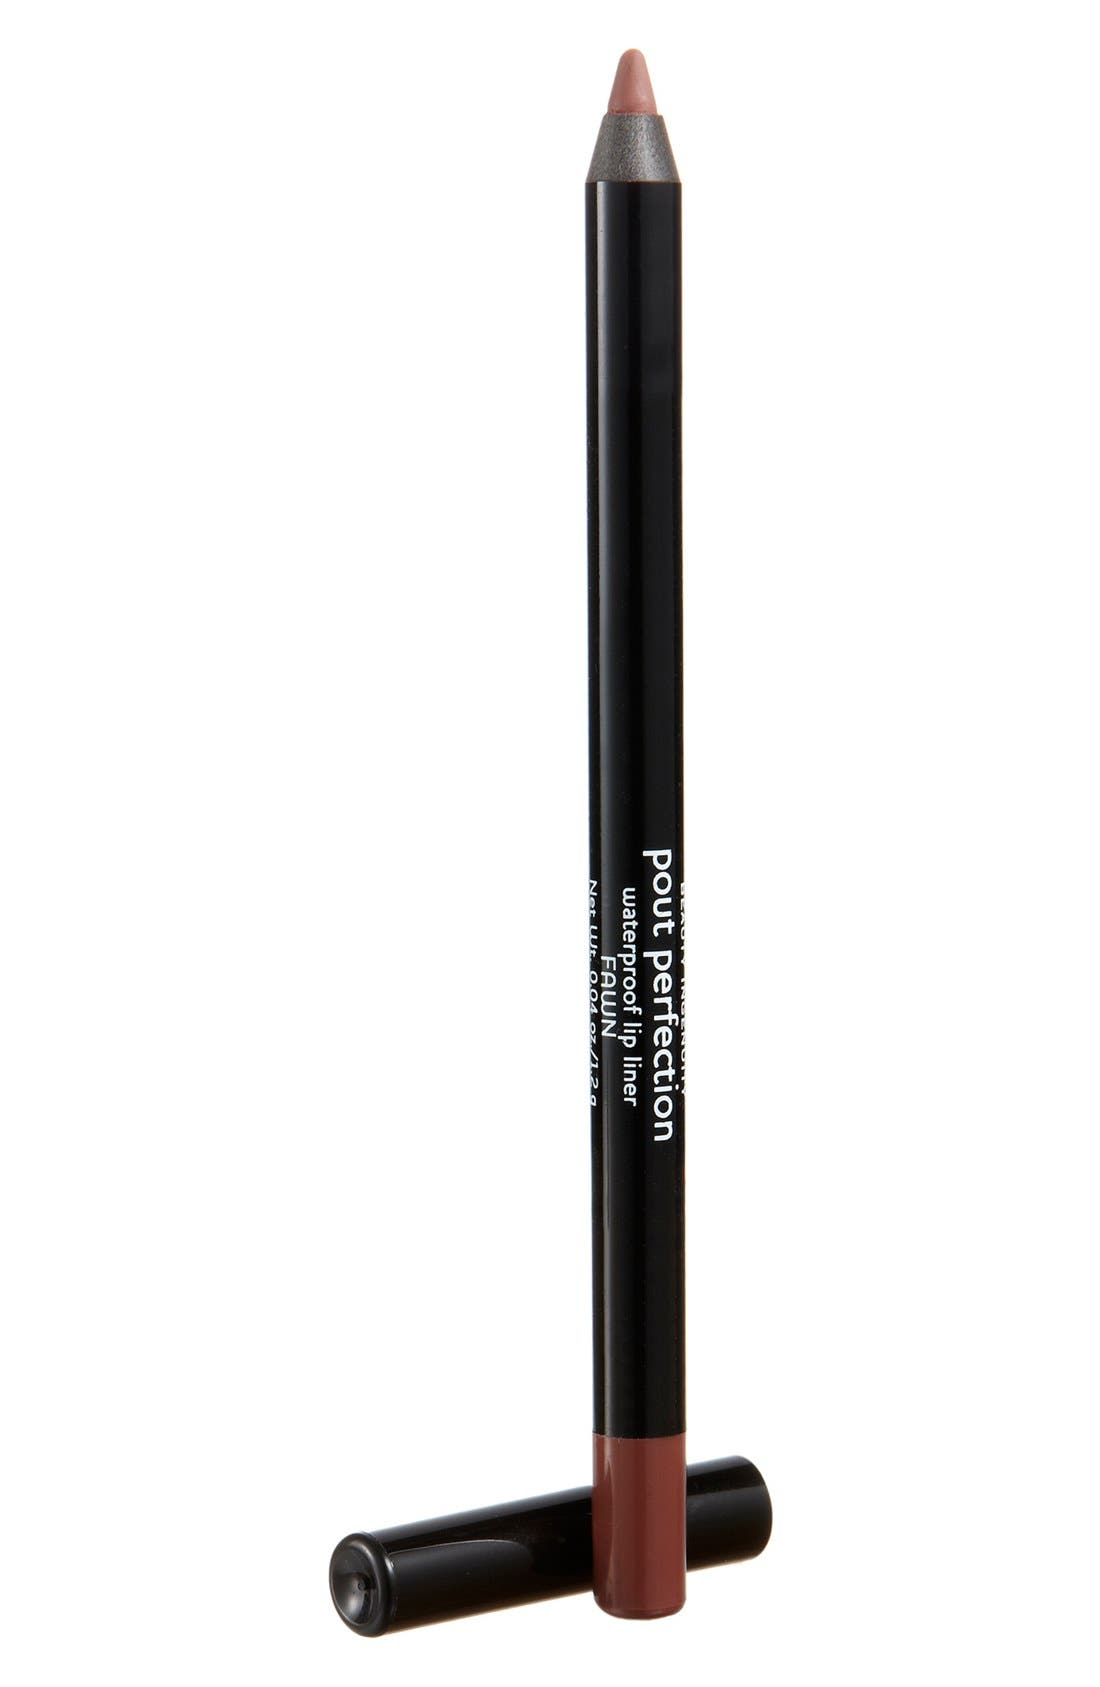 Laura Geller Beauty 'Pout Perfection' Waterproof Lip Liner